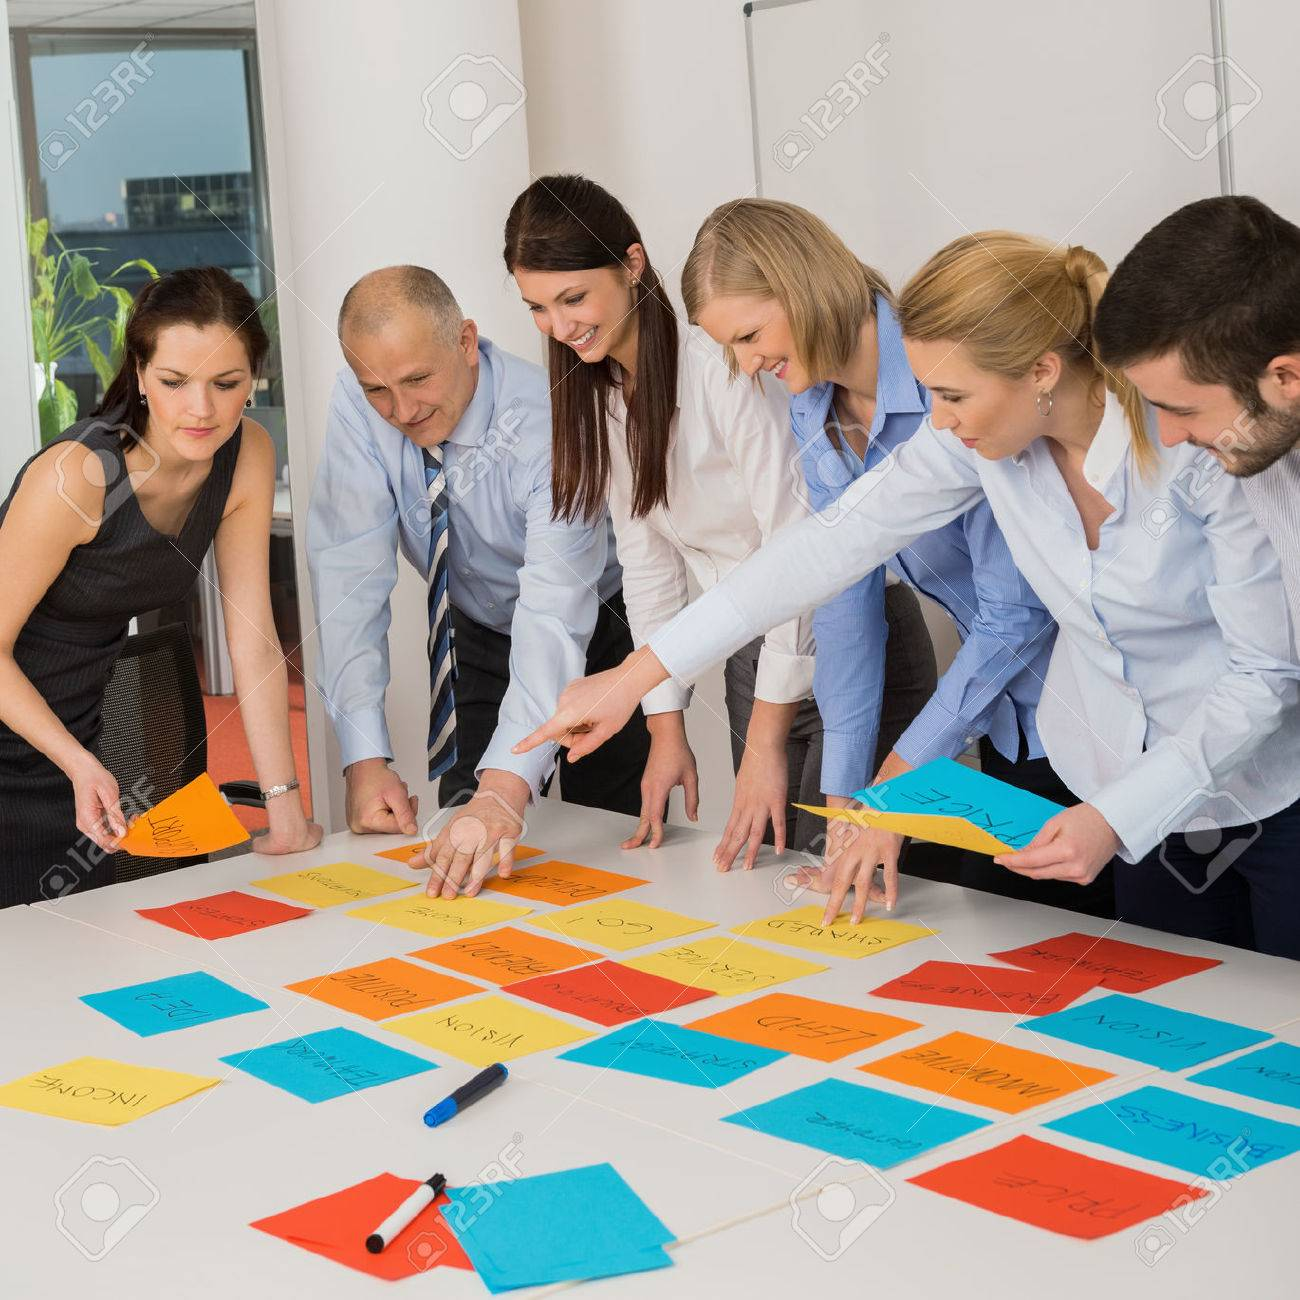 Business team brainstorming using color labels on table in office Standard-Bild - 27281137